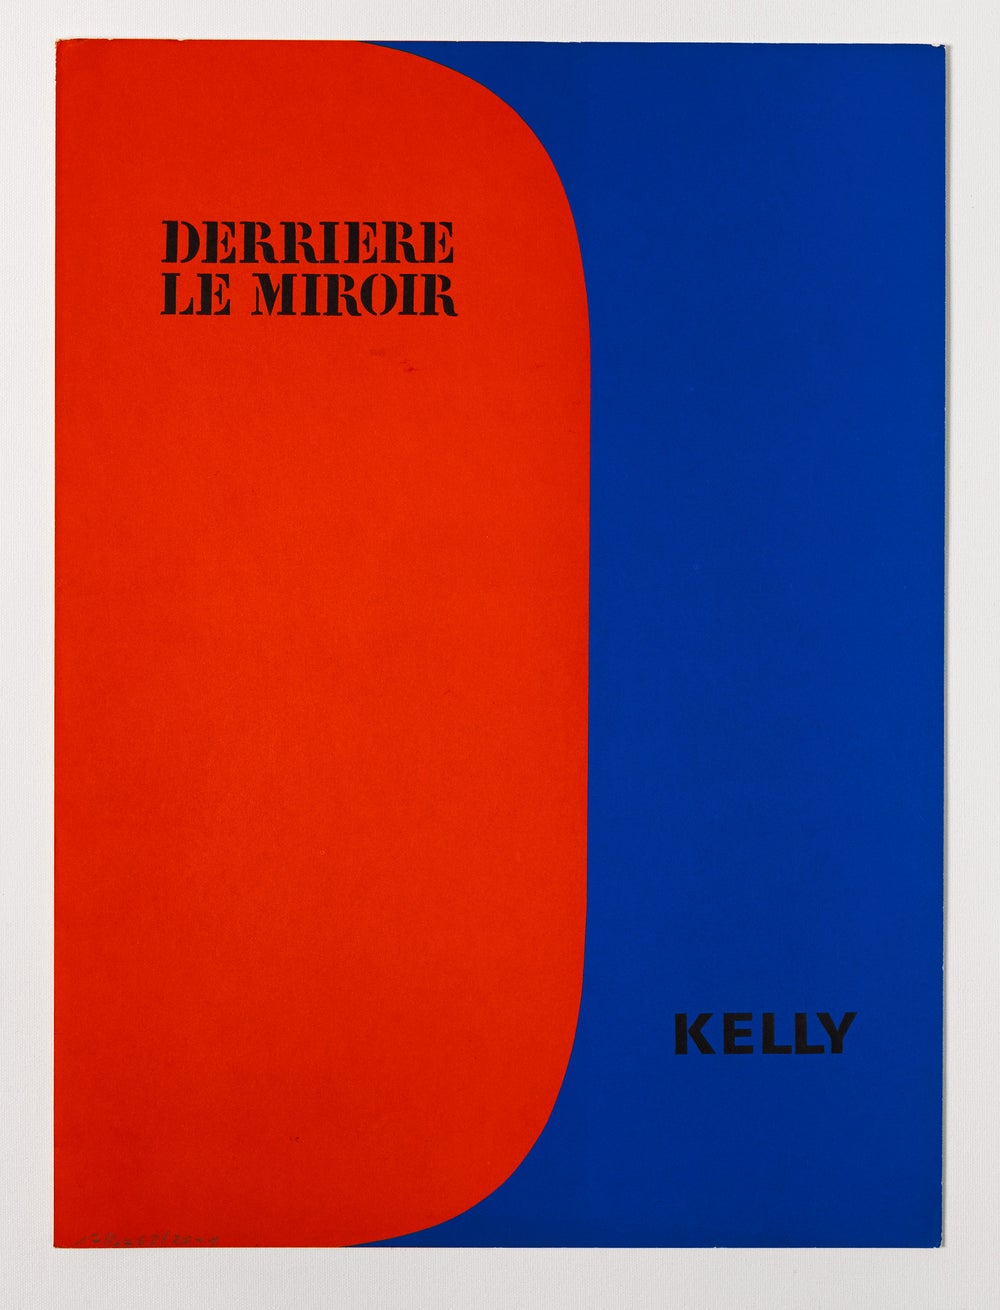 Image of Ellsworth Kelly, Derrière Le Miroir - Kelly No. 149, 1964, red / blue